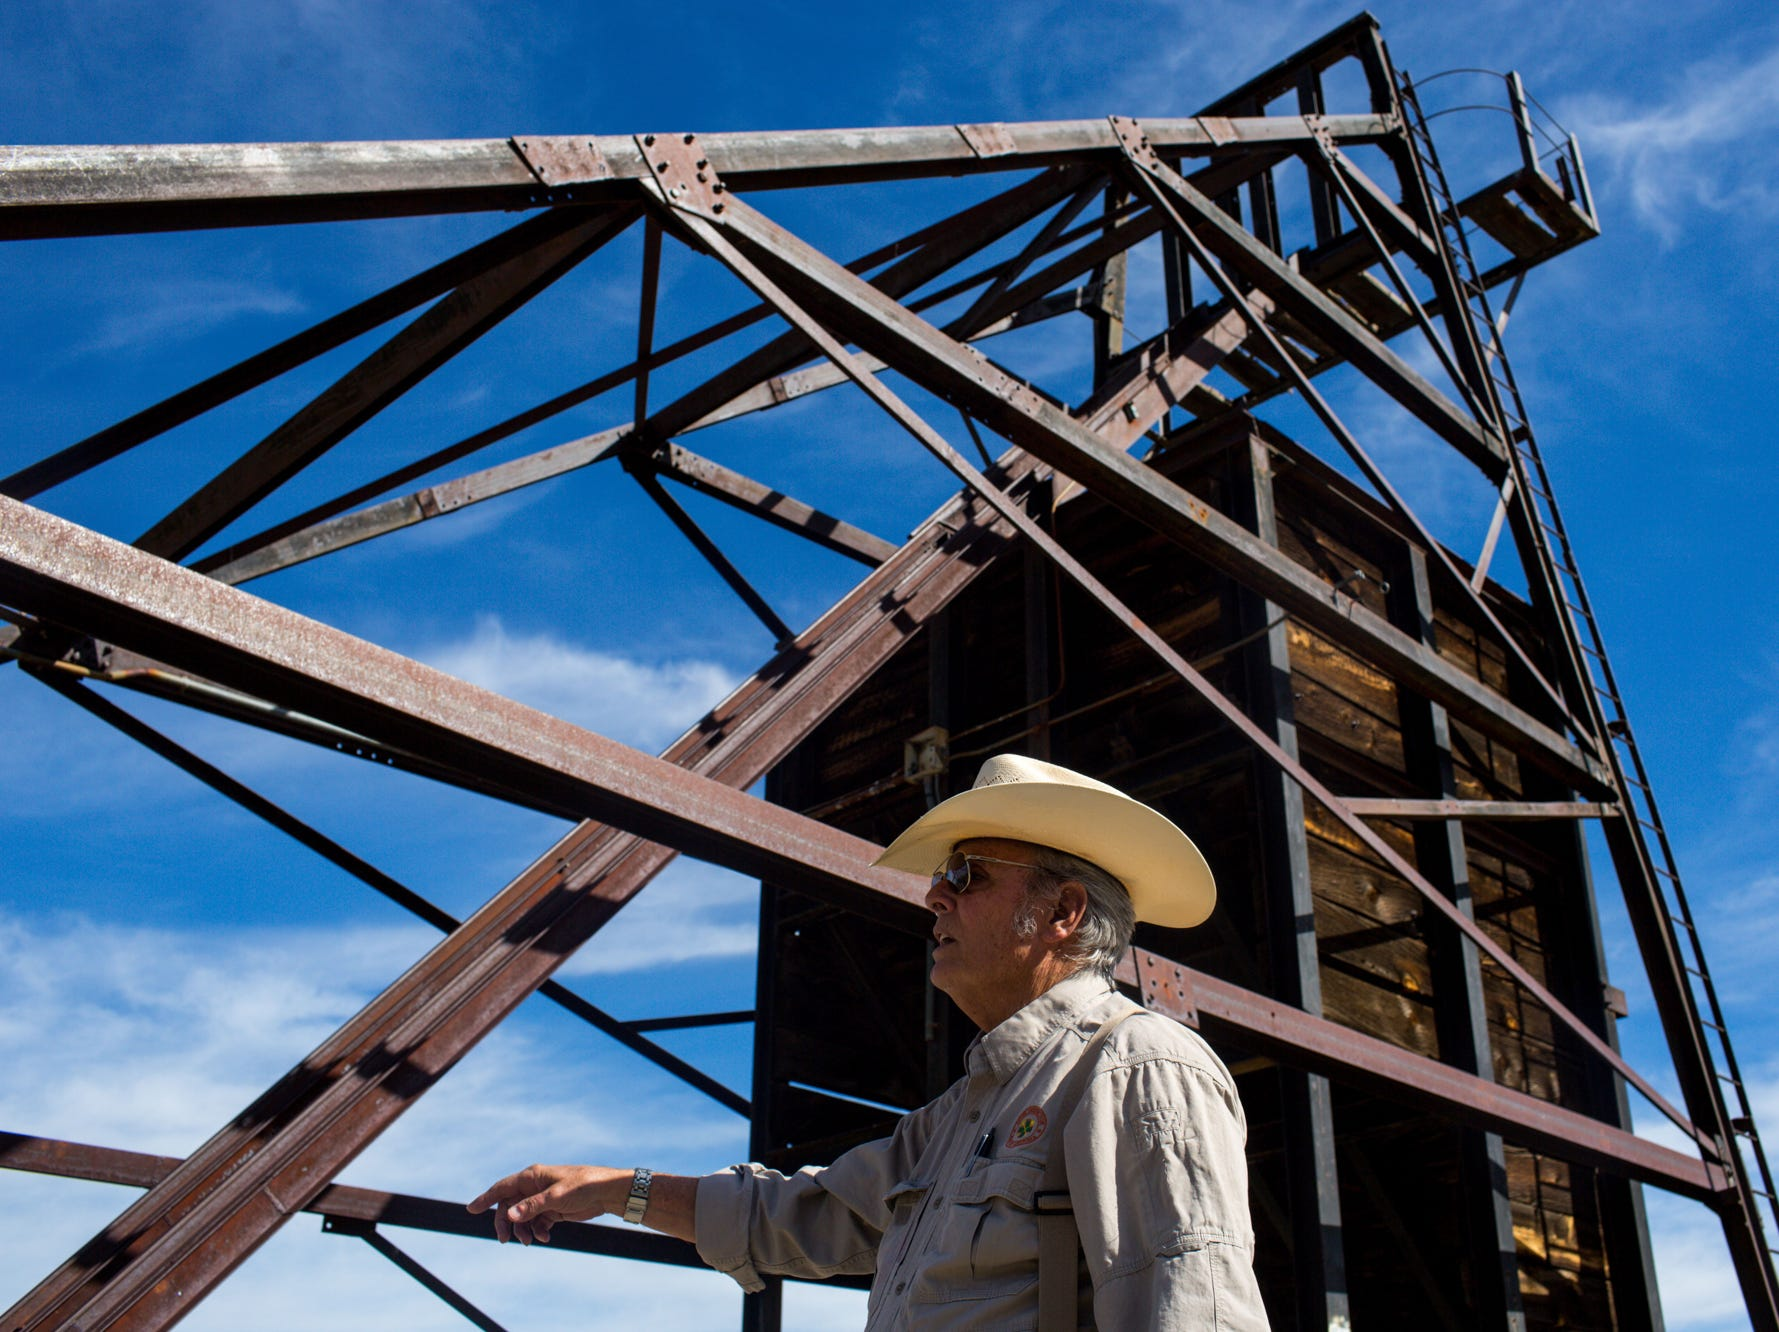 Jerry Tyra fits the classic image of an Old West sheriff: silver hair, a straw cowboy hat and a cigarette often between his lips. But as one of Arizona's only abandoned-mine supervisors, he is protecting people from a menace created during the Old West: ore mines, like this one, abandoned throughout the state.